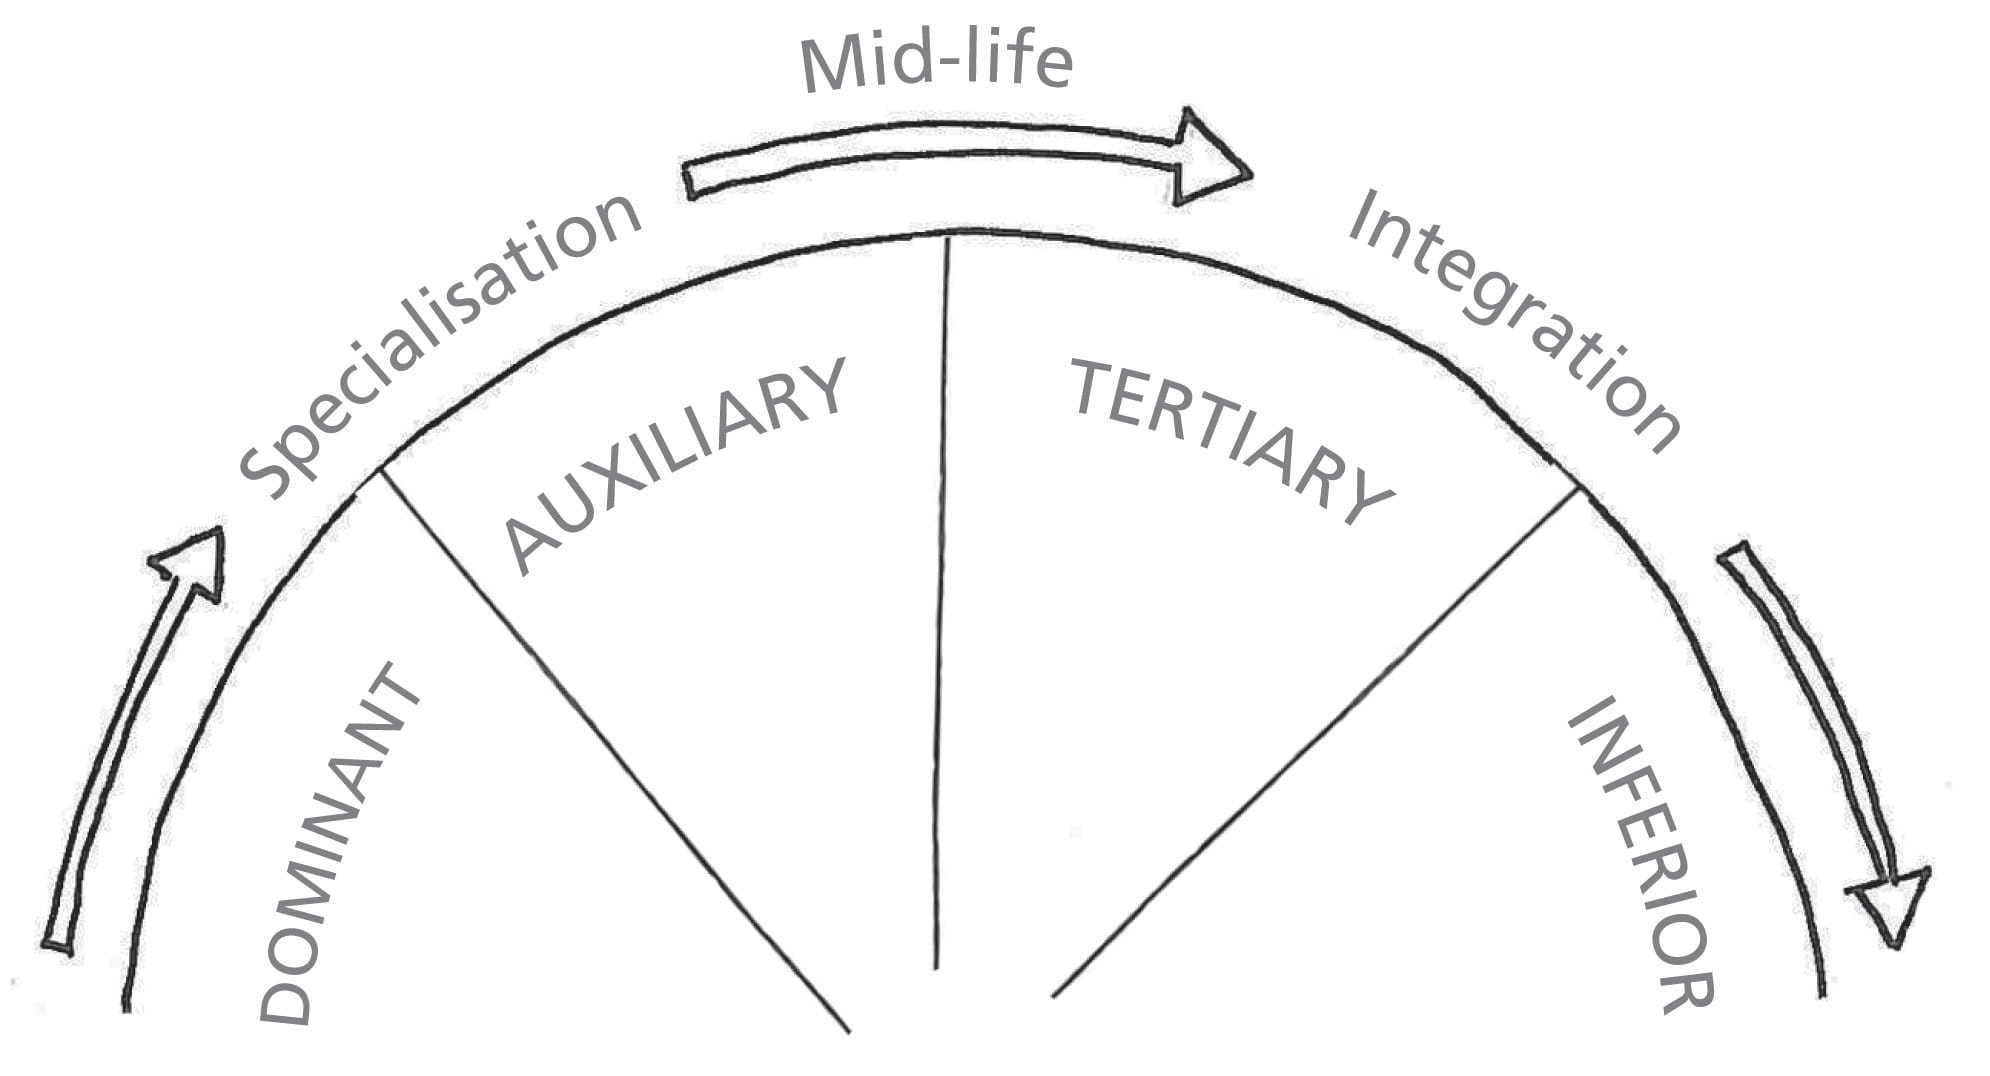 Jung's lifecycle from specialisation to midlife